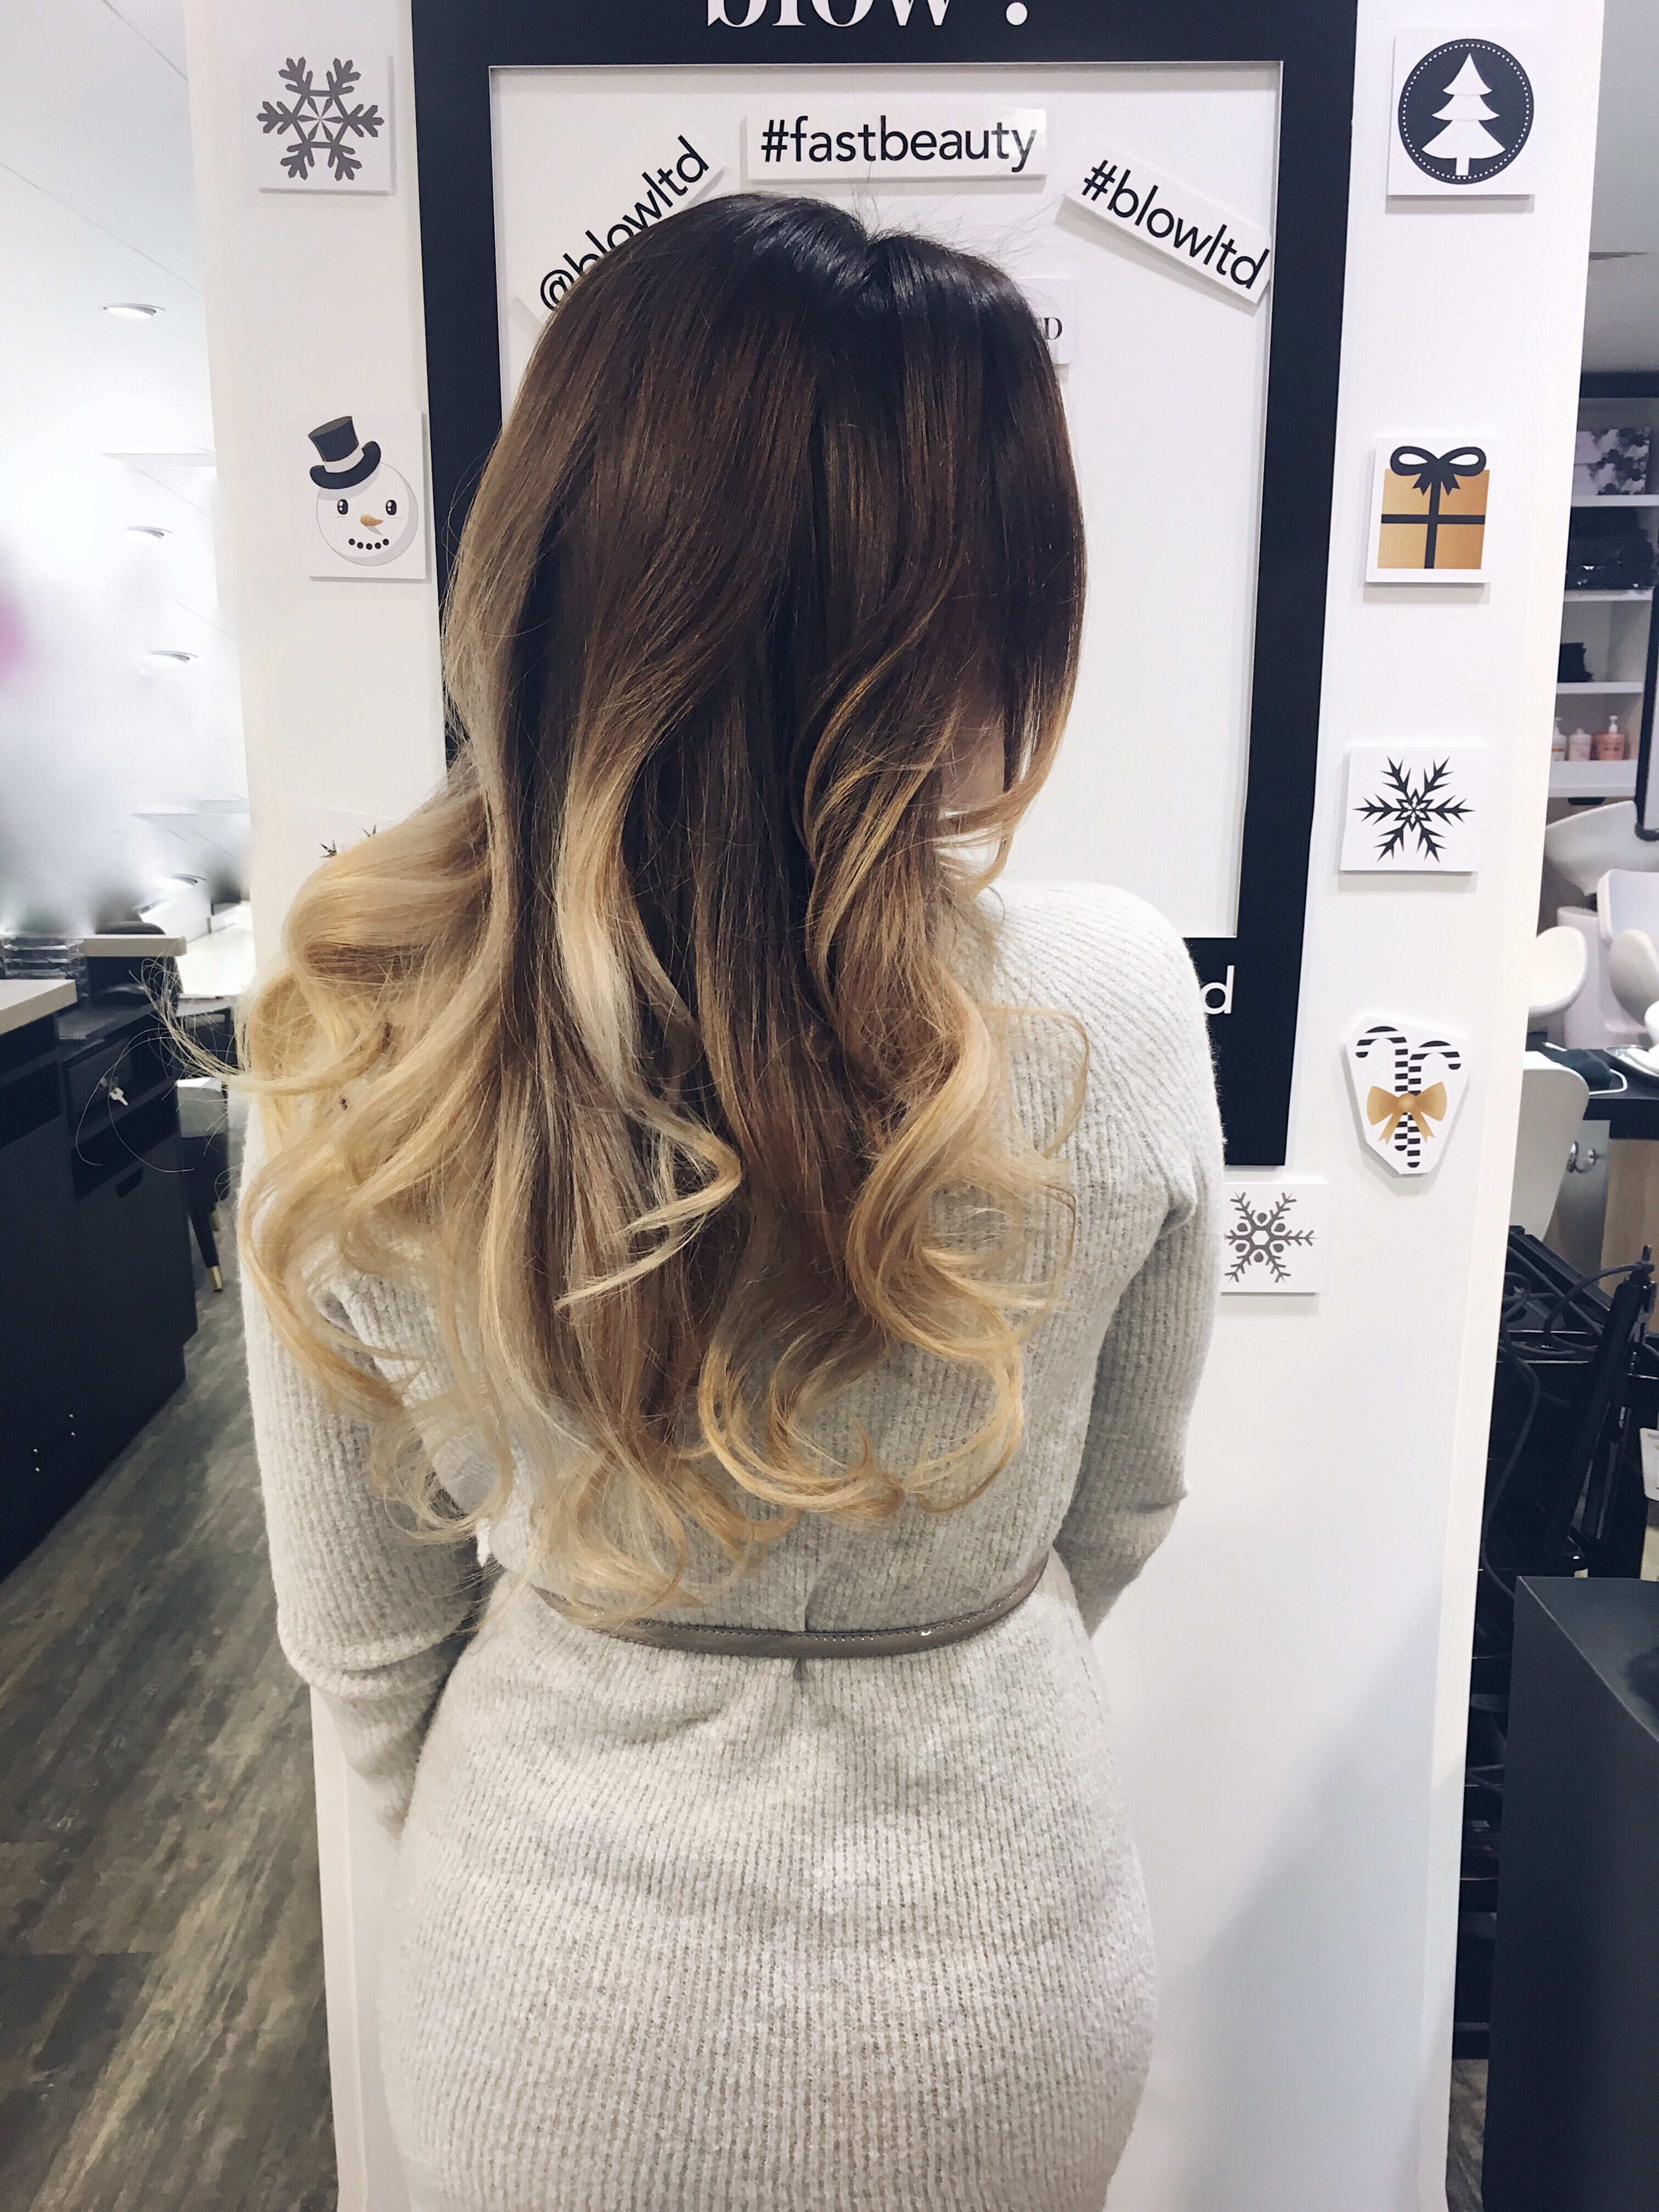 My Go-To Blow Dry Spot With Blow LTD.